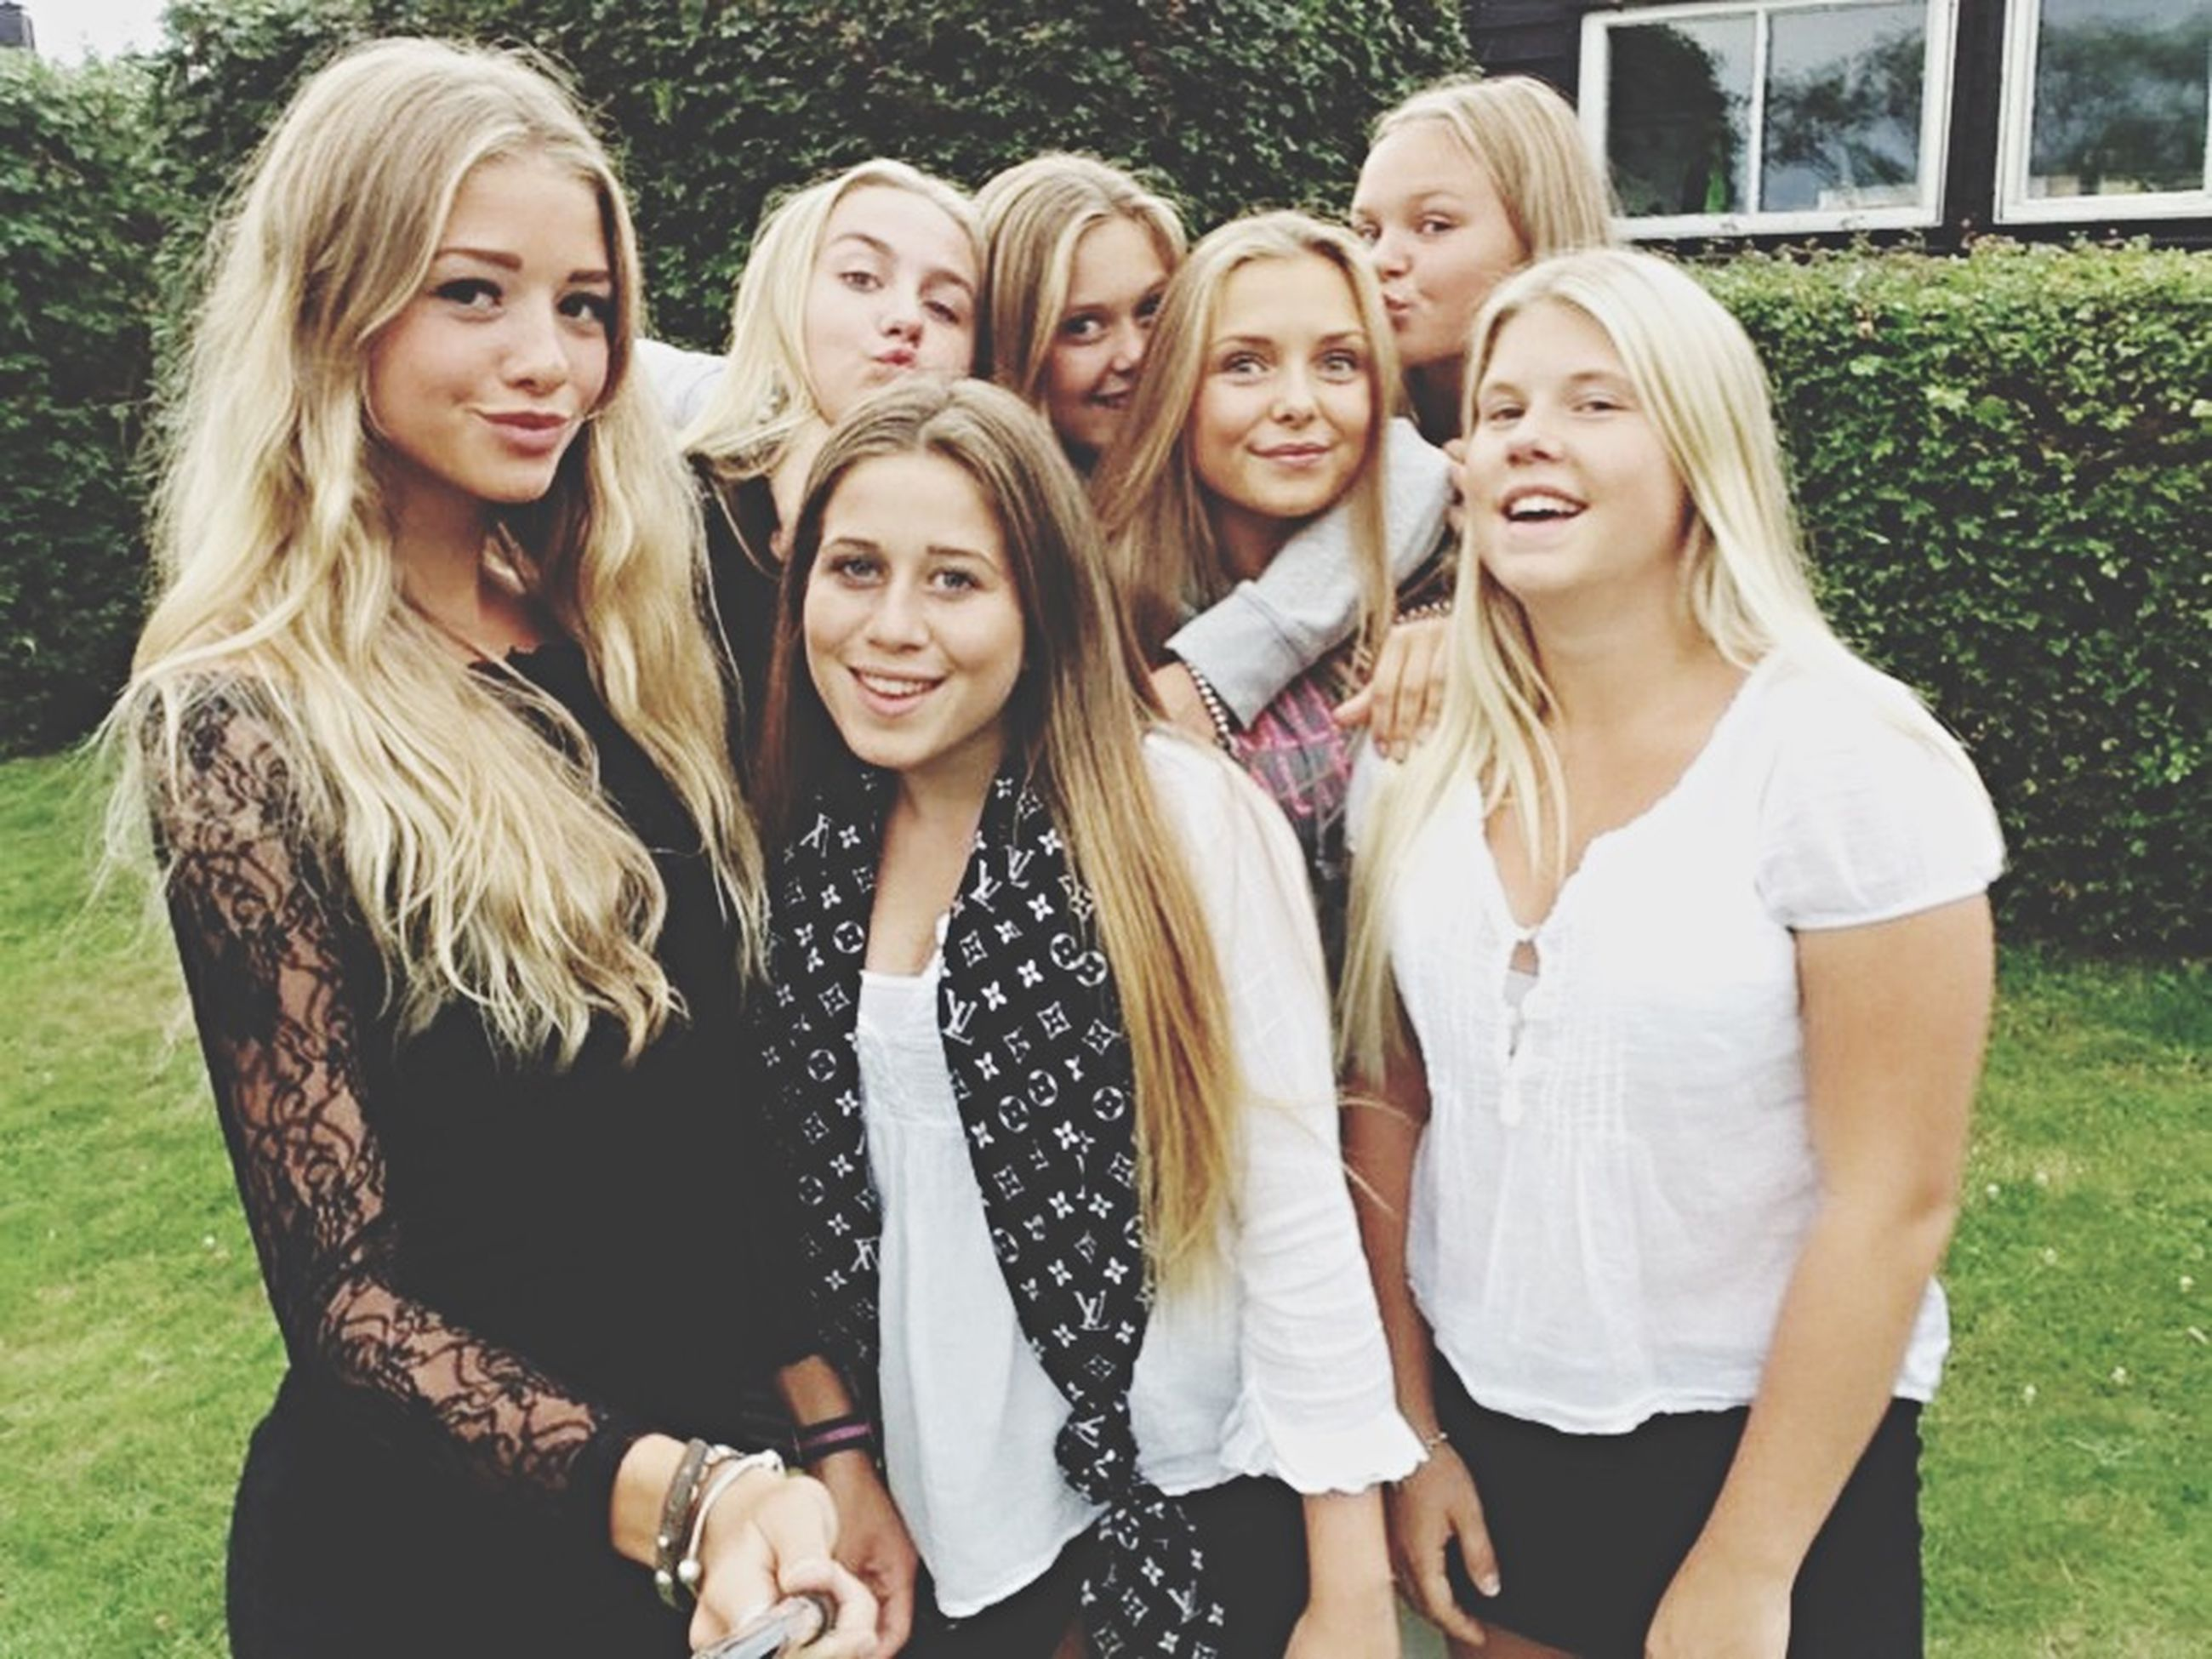 togetherness, bonding, person, smiling, lifestyles, love, leisure activity, happiness, looking at camera, portrait, front view, casual clothing, friendship, young women, young adult, girls, toothy smile, childhood